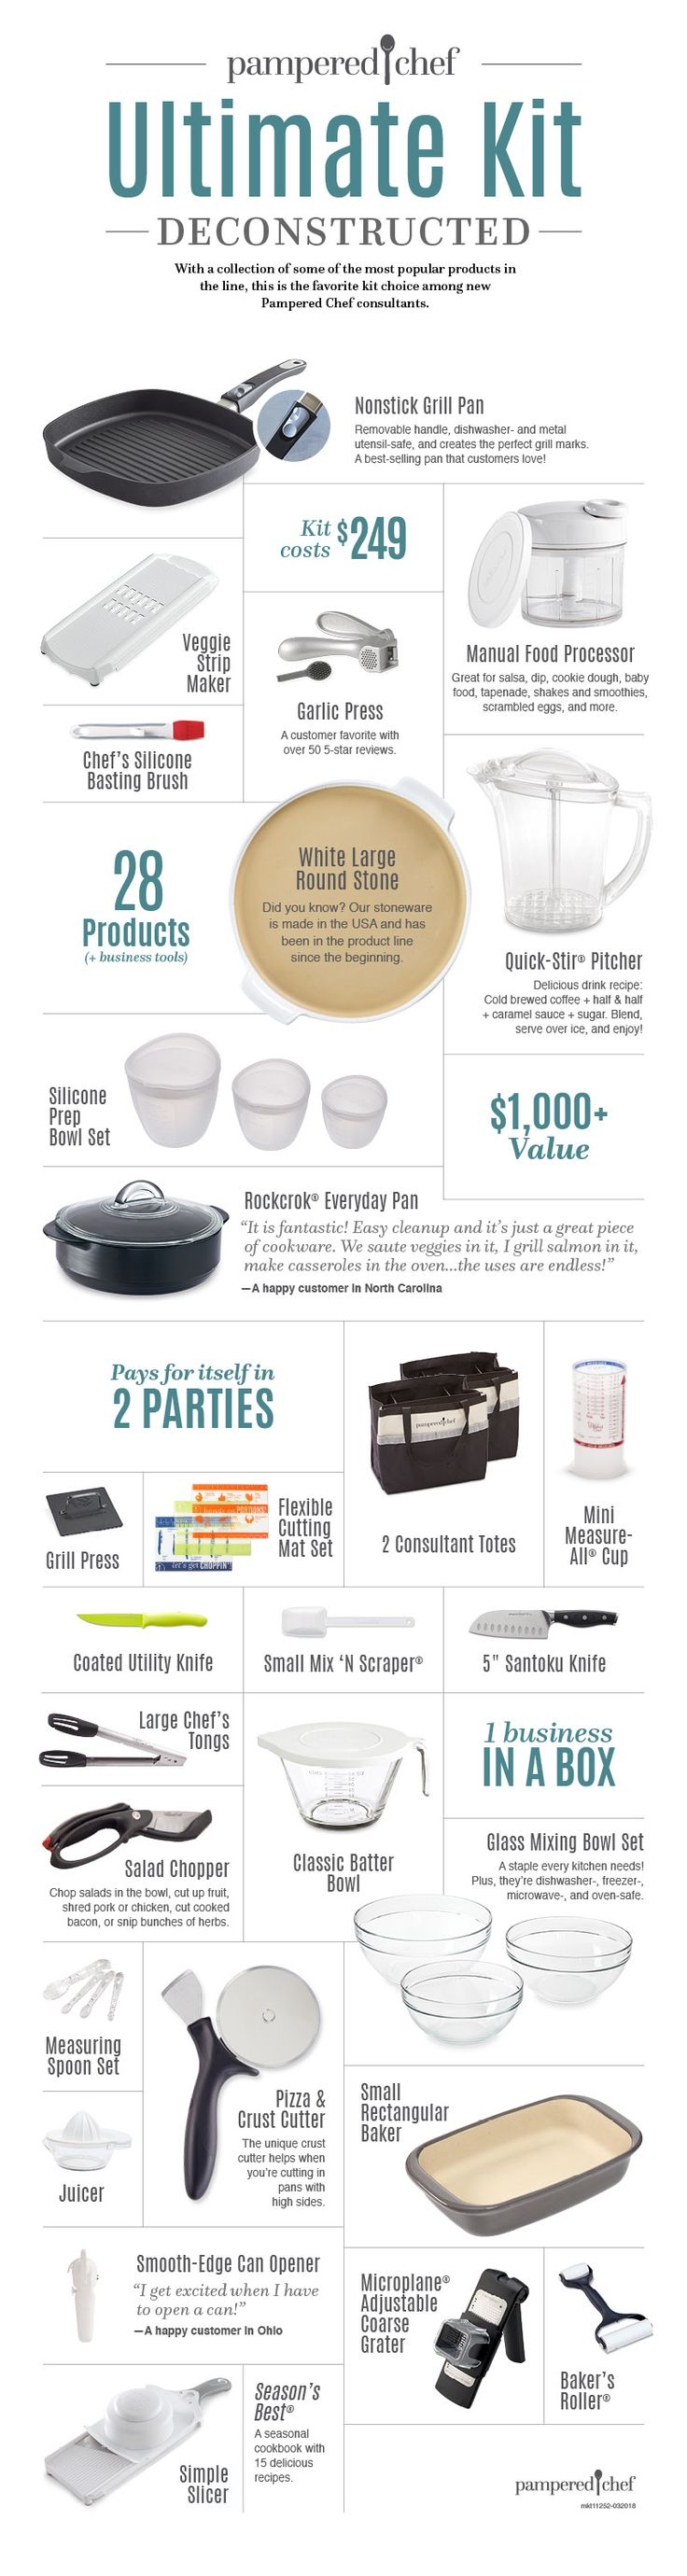 Deconstructing the Pampered Chef Ultimate Kit - Pampered Chef